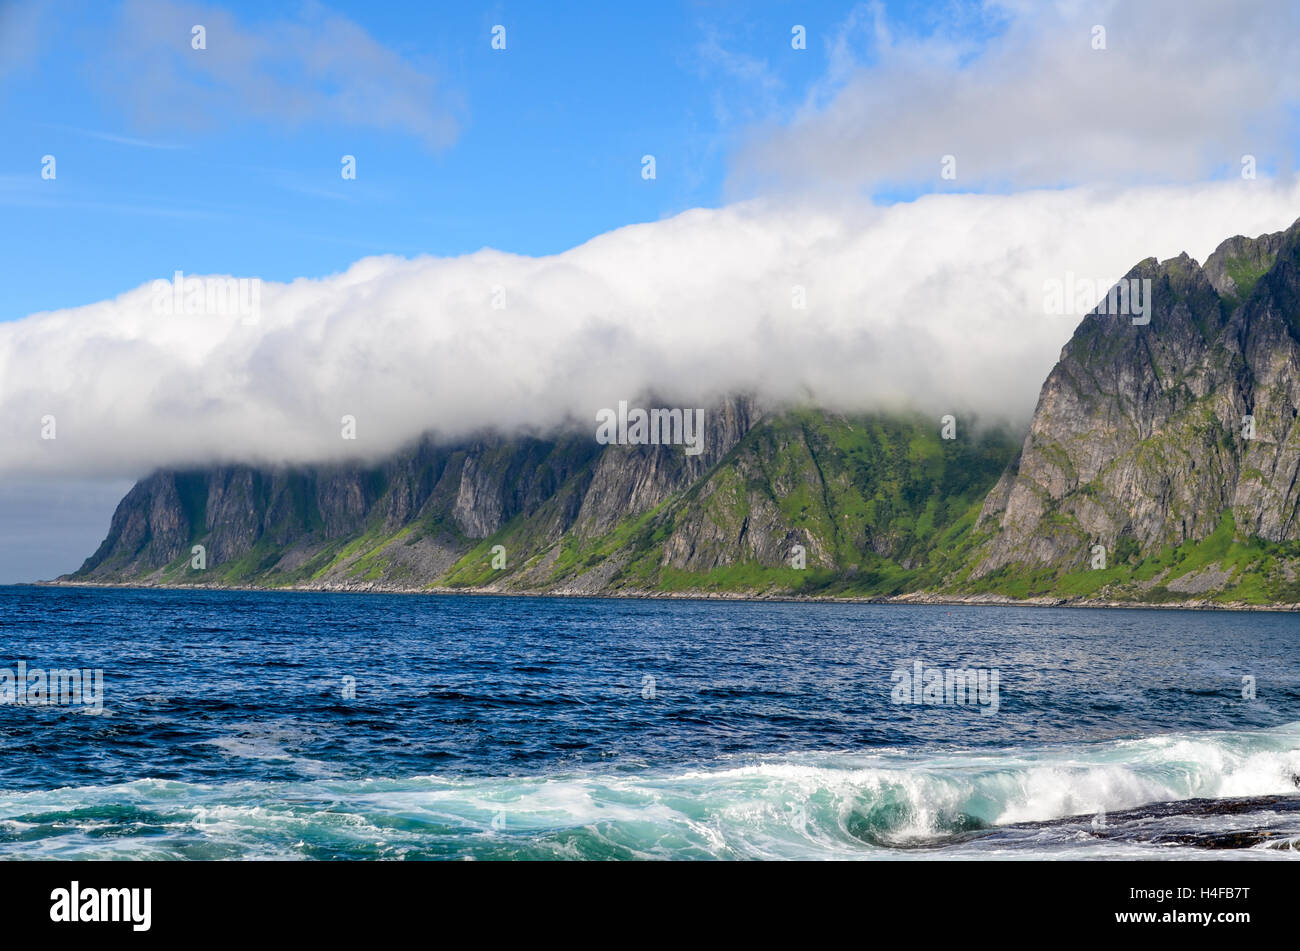 Clouds taking on the rough landscape of Senja, Norway - Stock Image